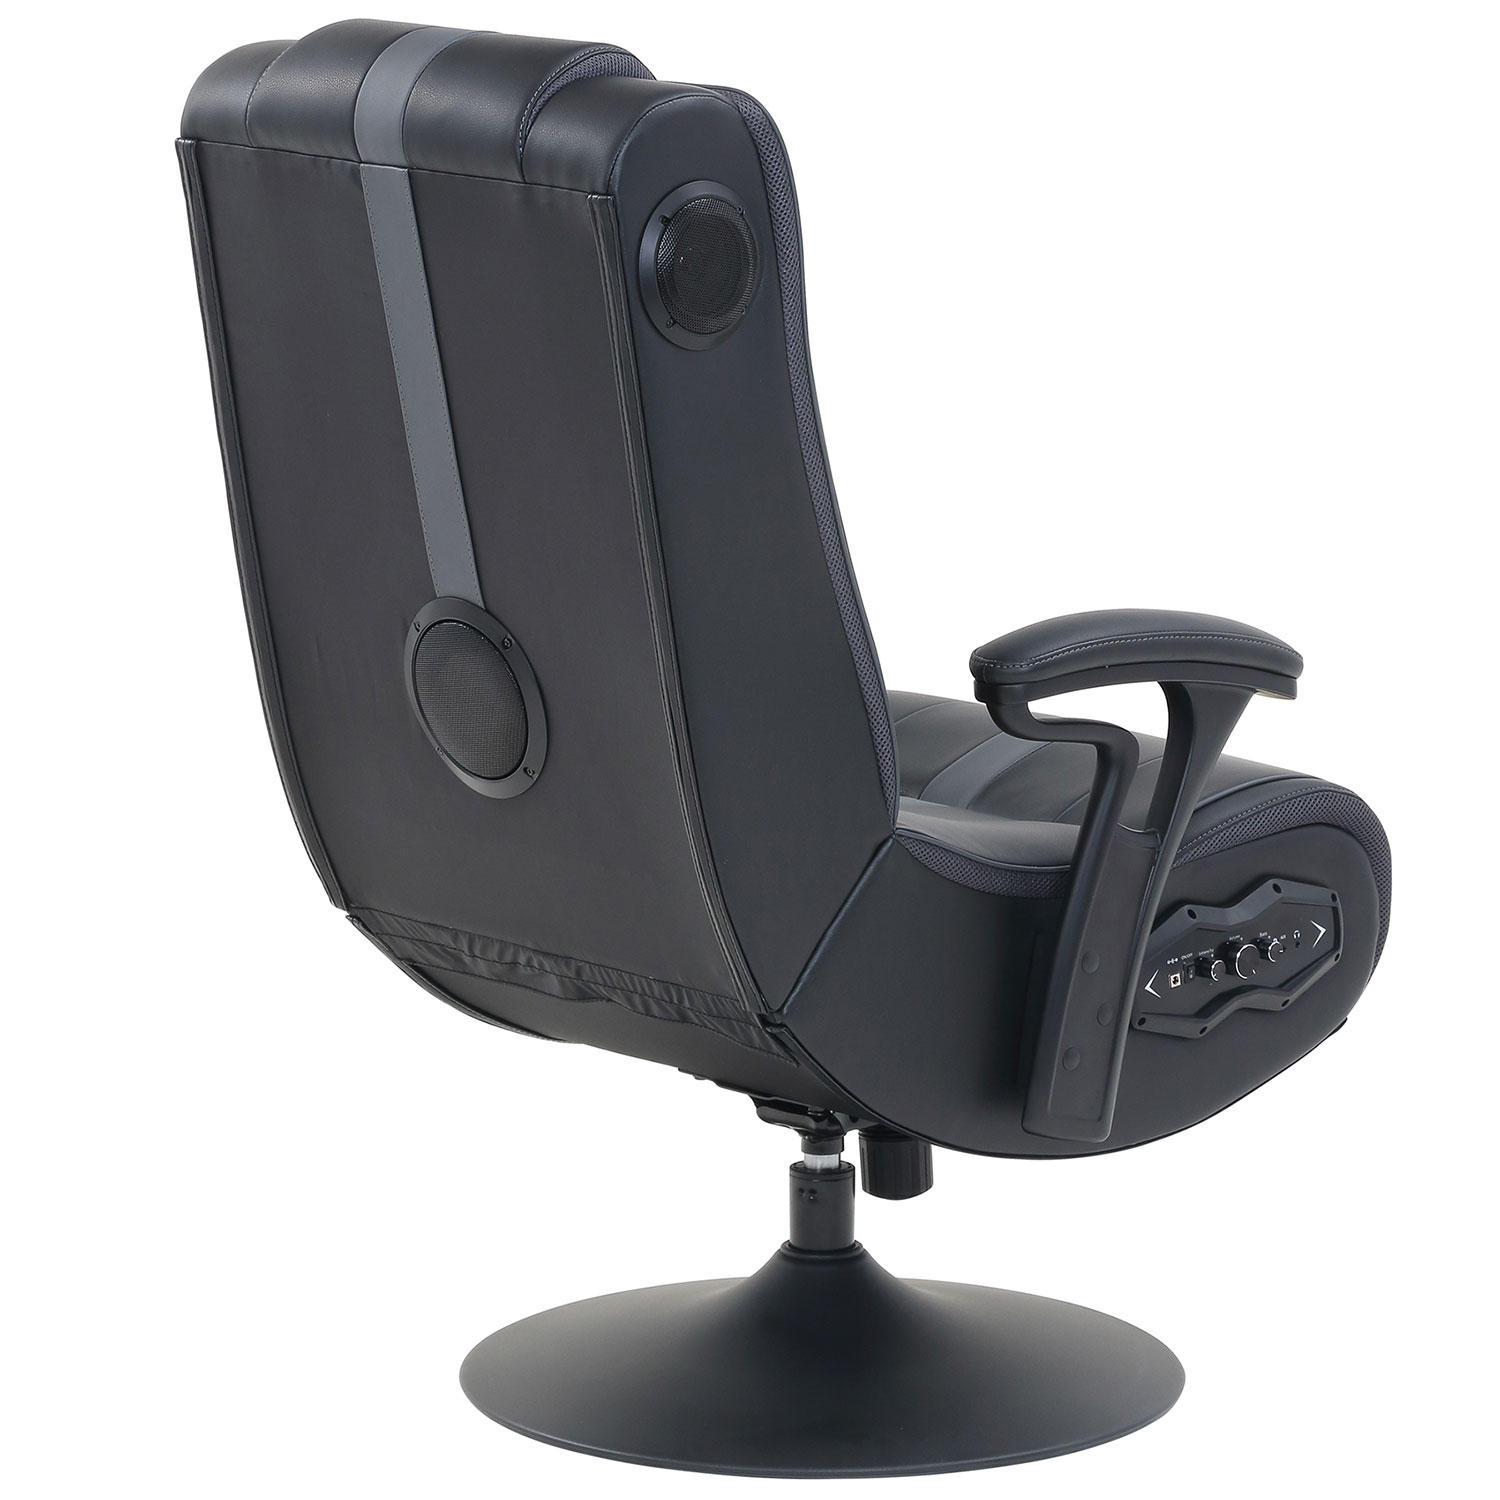 True Innovations 51579EC Pedestal Gaming Chair with Built in Sound and Vibration System